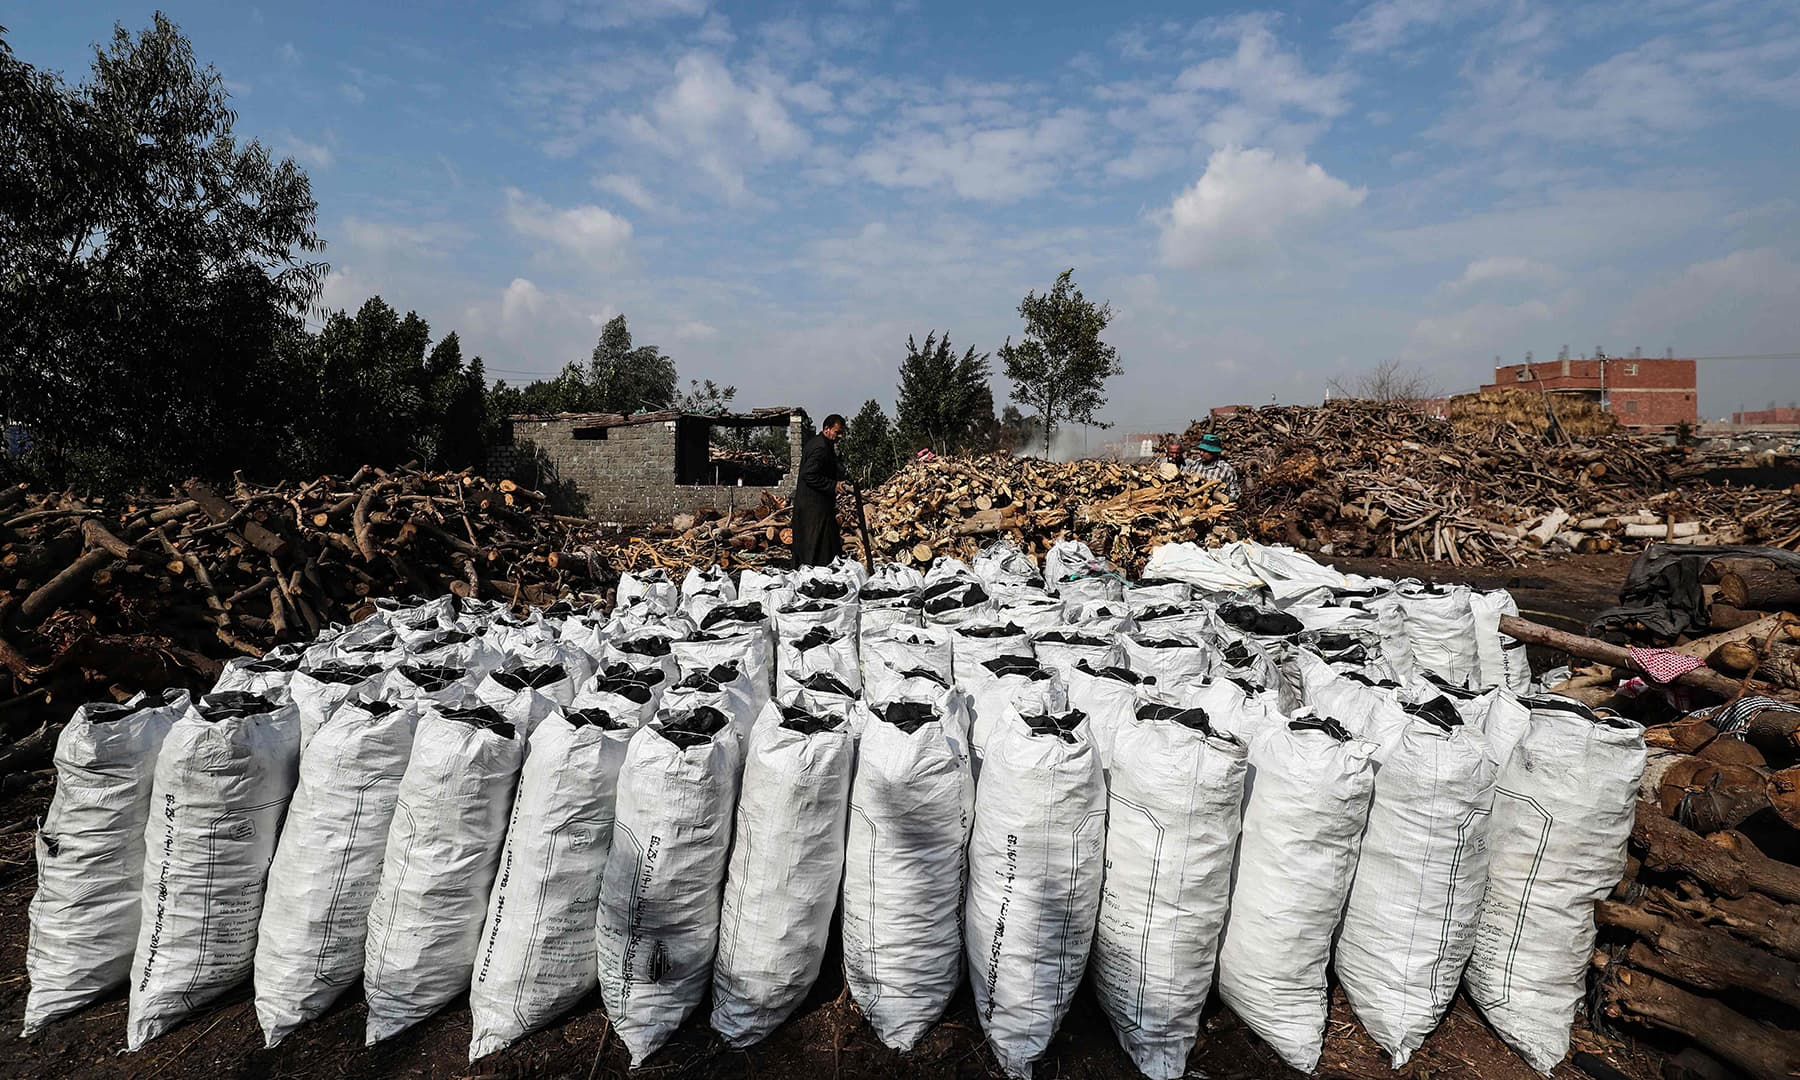 Egyptian labourers bill bags of charcoal at a factory in Egypt's Sharkia governorate. — AFP